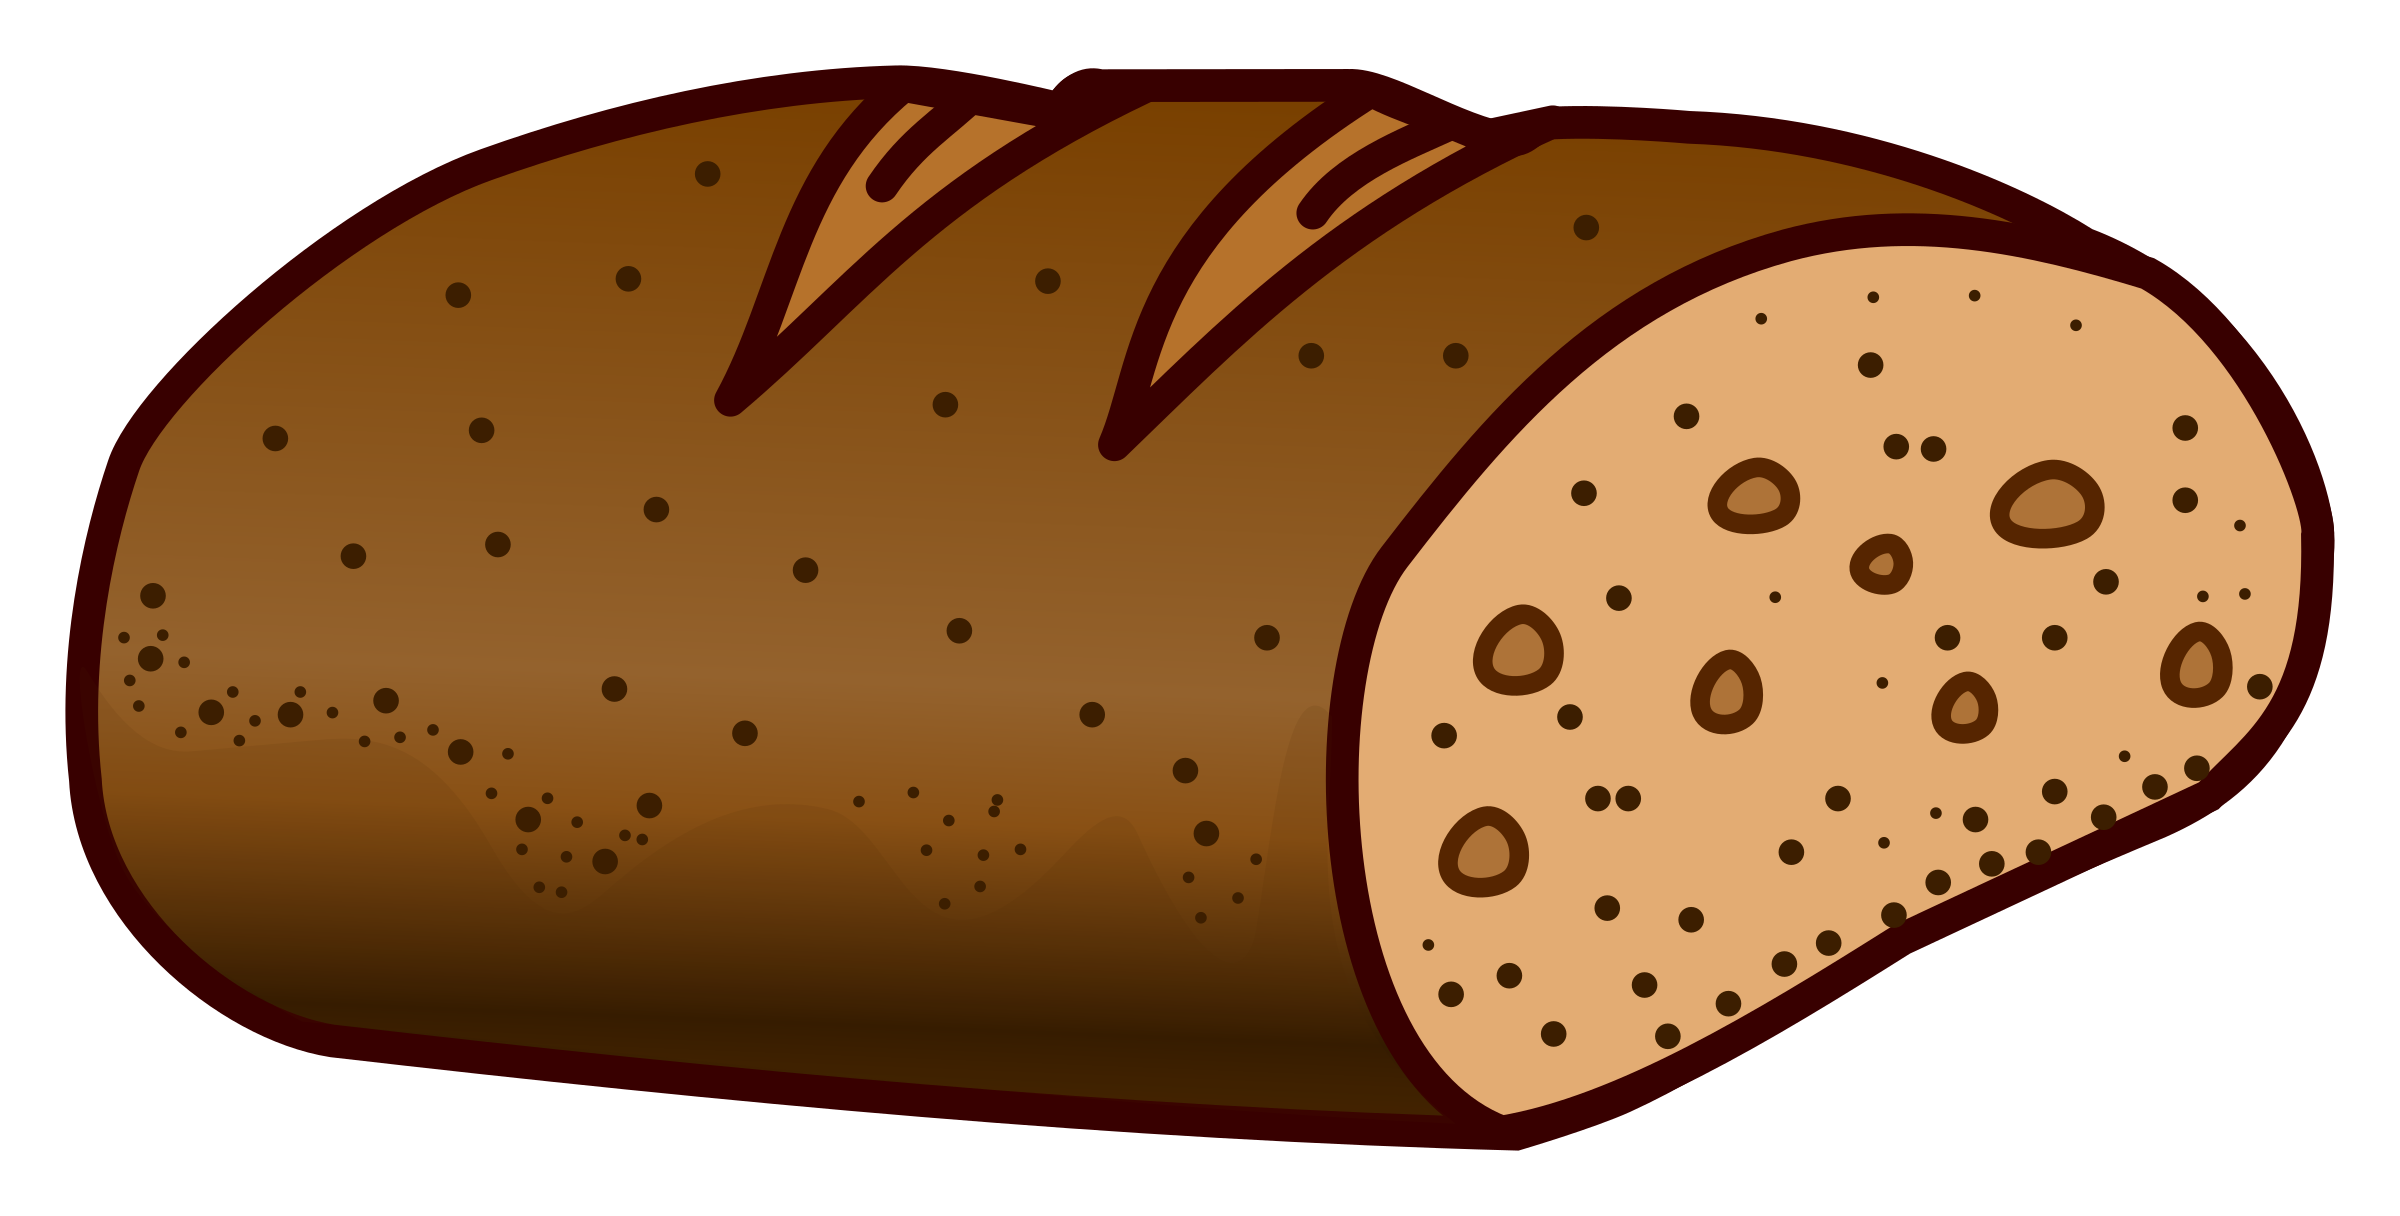 Loaf of bread clipart garlic.